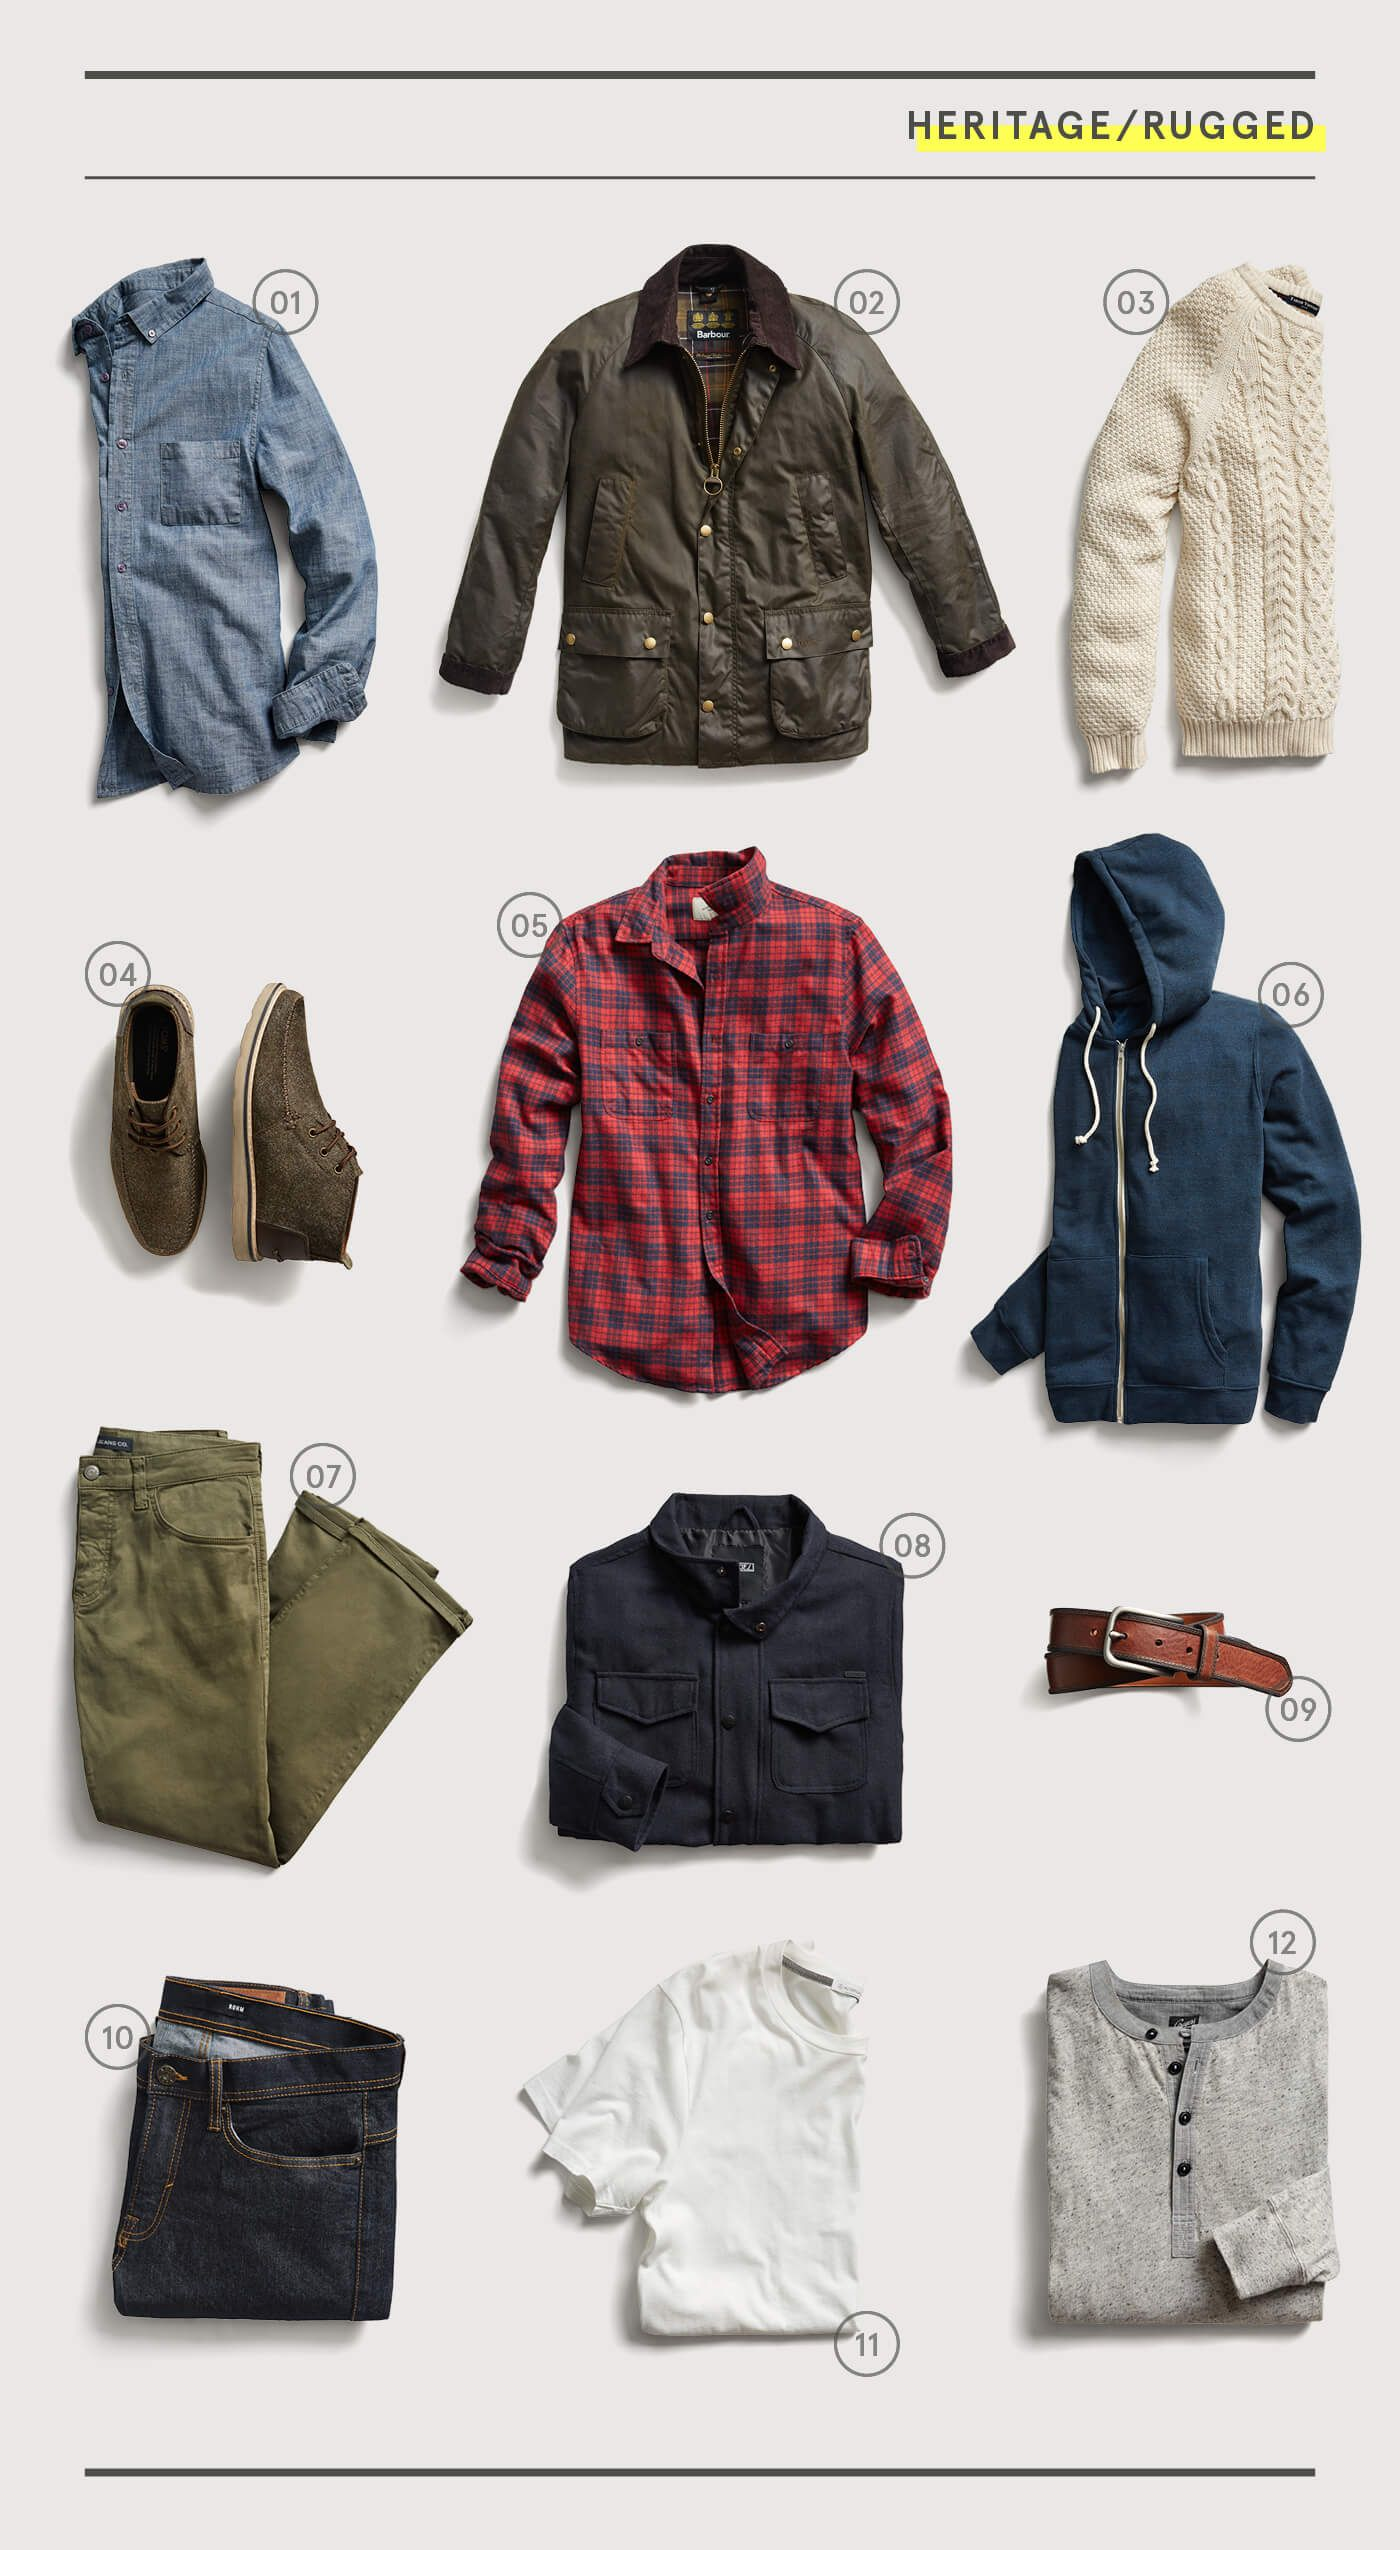 How to functional build and fashionable wardrobe best photo